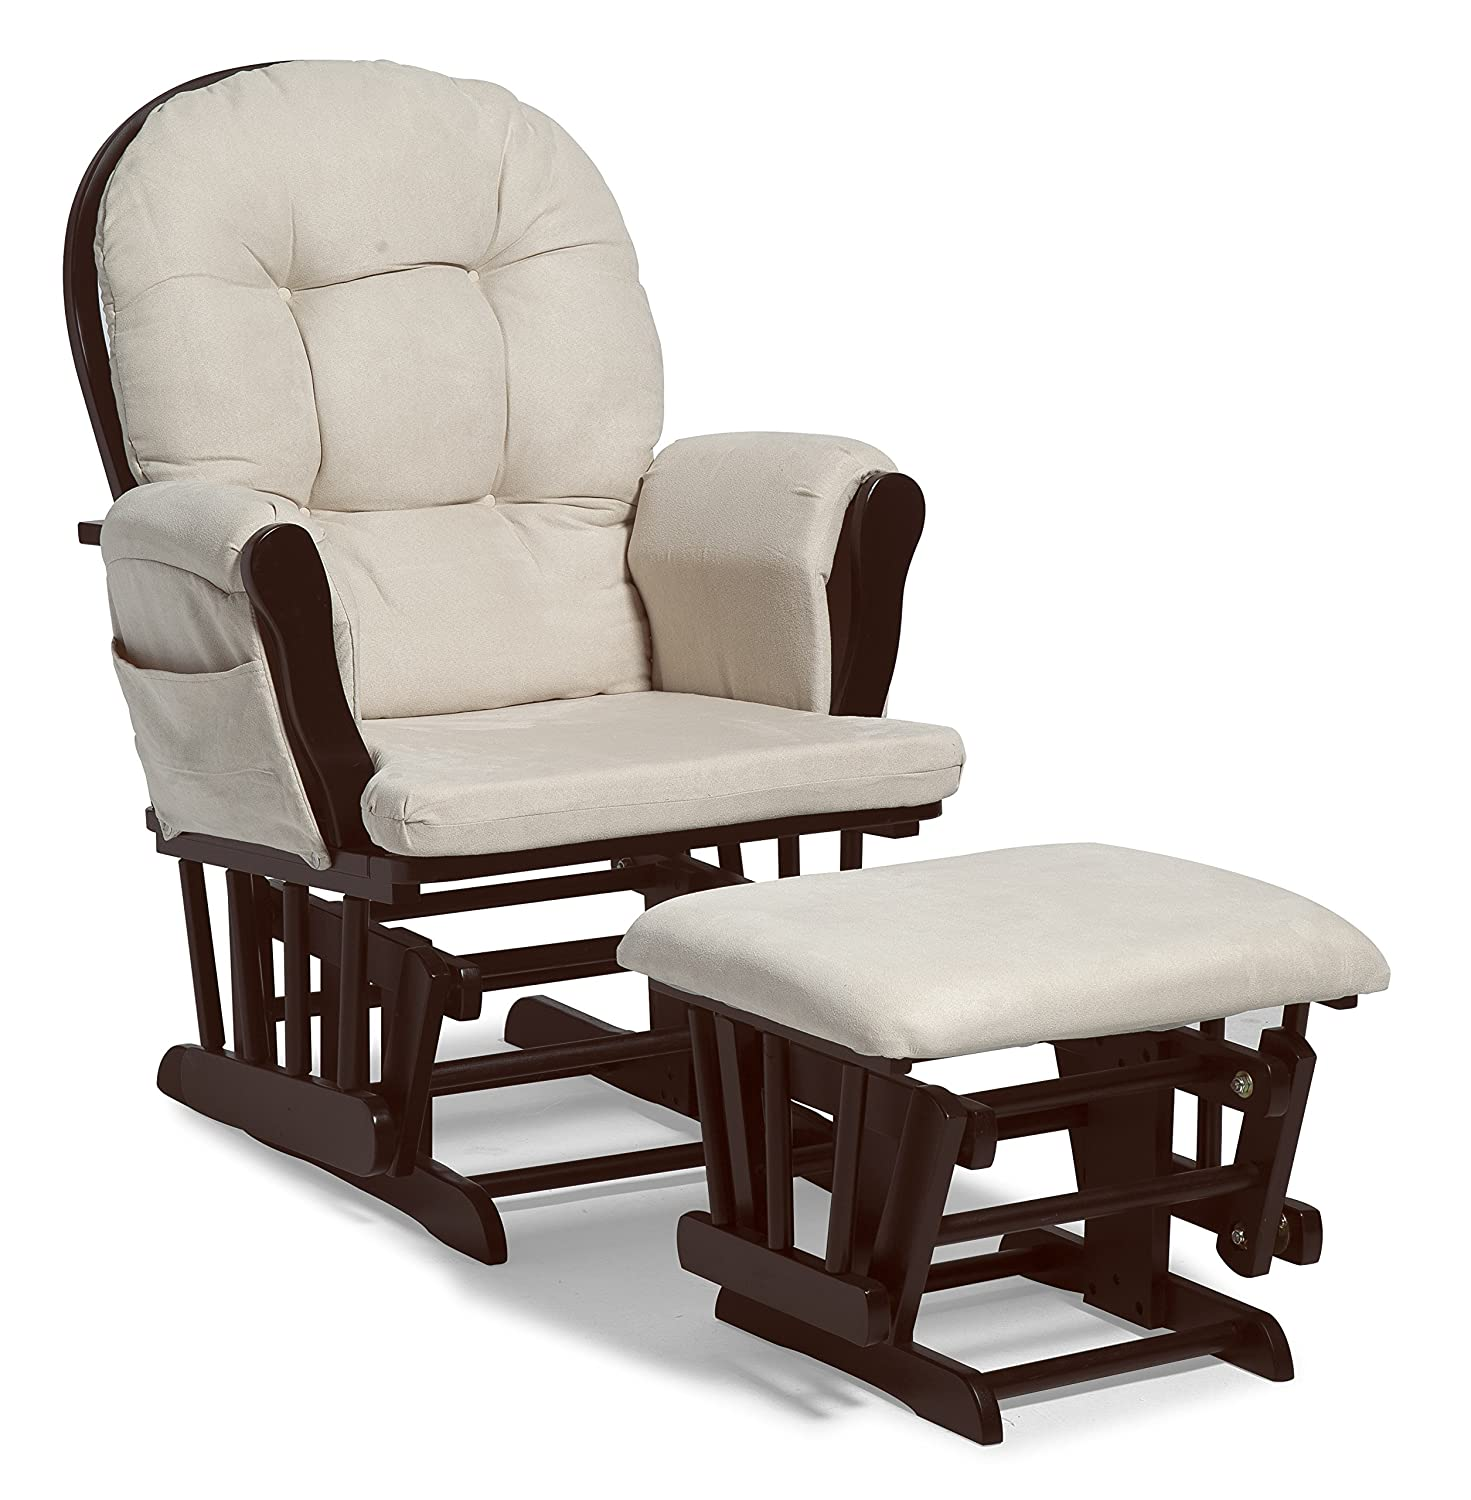 Storkcraft Hoop Glider and Ottoman Set, Espresso/Beige 06550-419